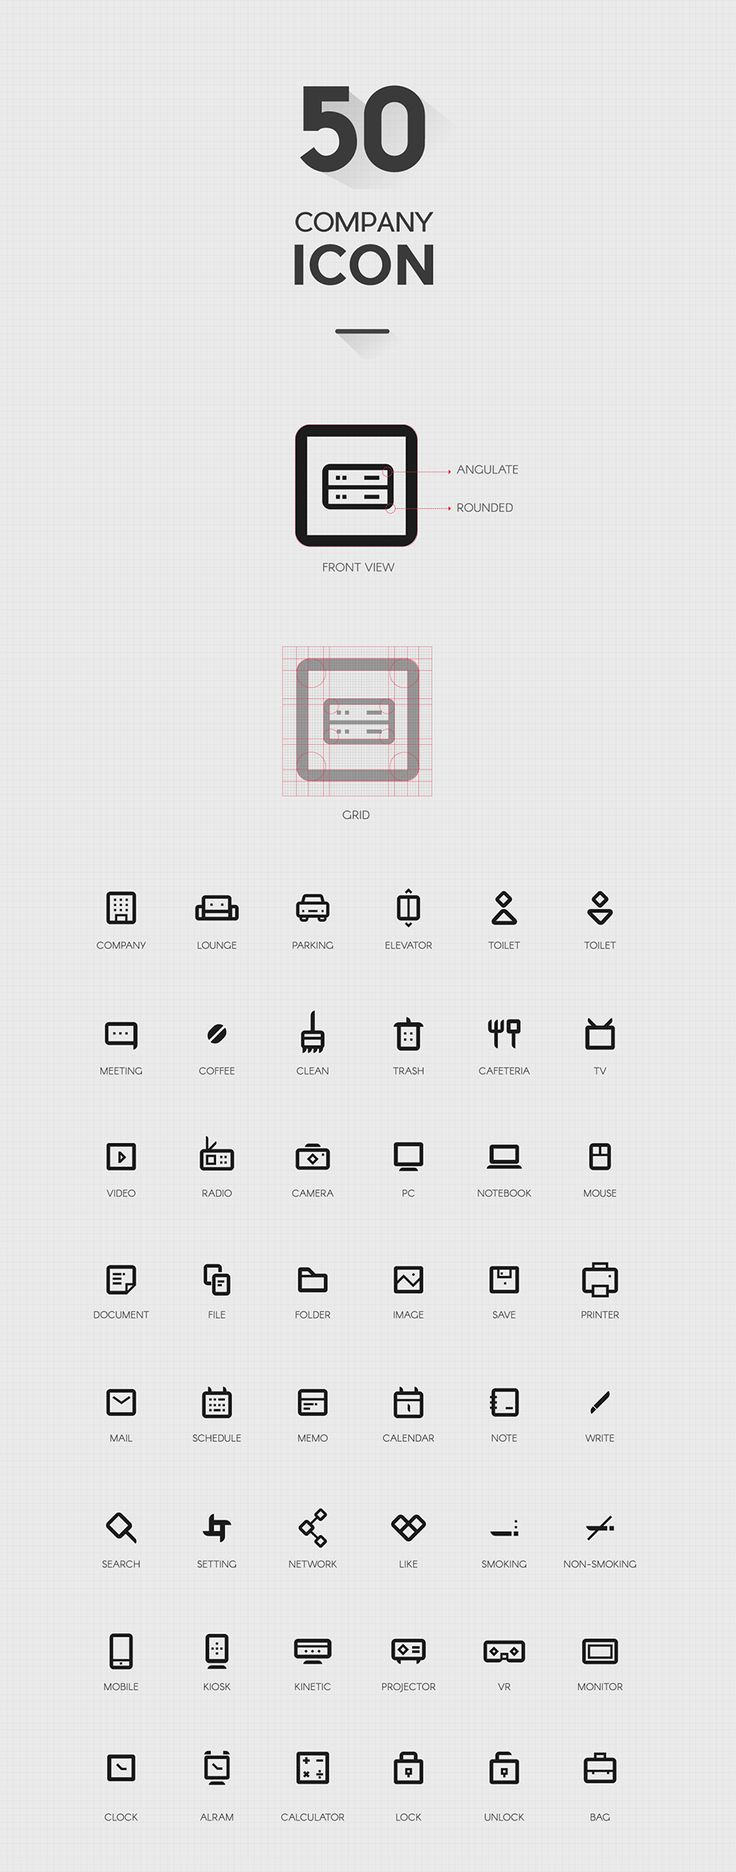 Free 50 Company Icon Set Vector • Ai & Svg File (995 KB) | By Yunjung Seo on Free Design Resources | #free #vector #ai #svg #icon #company